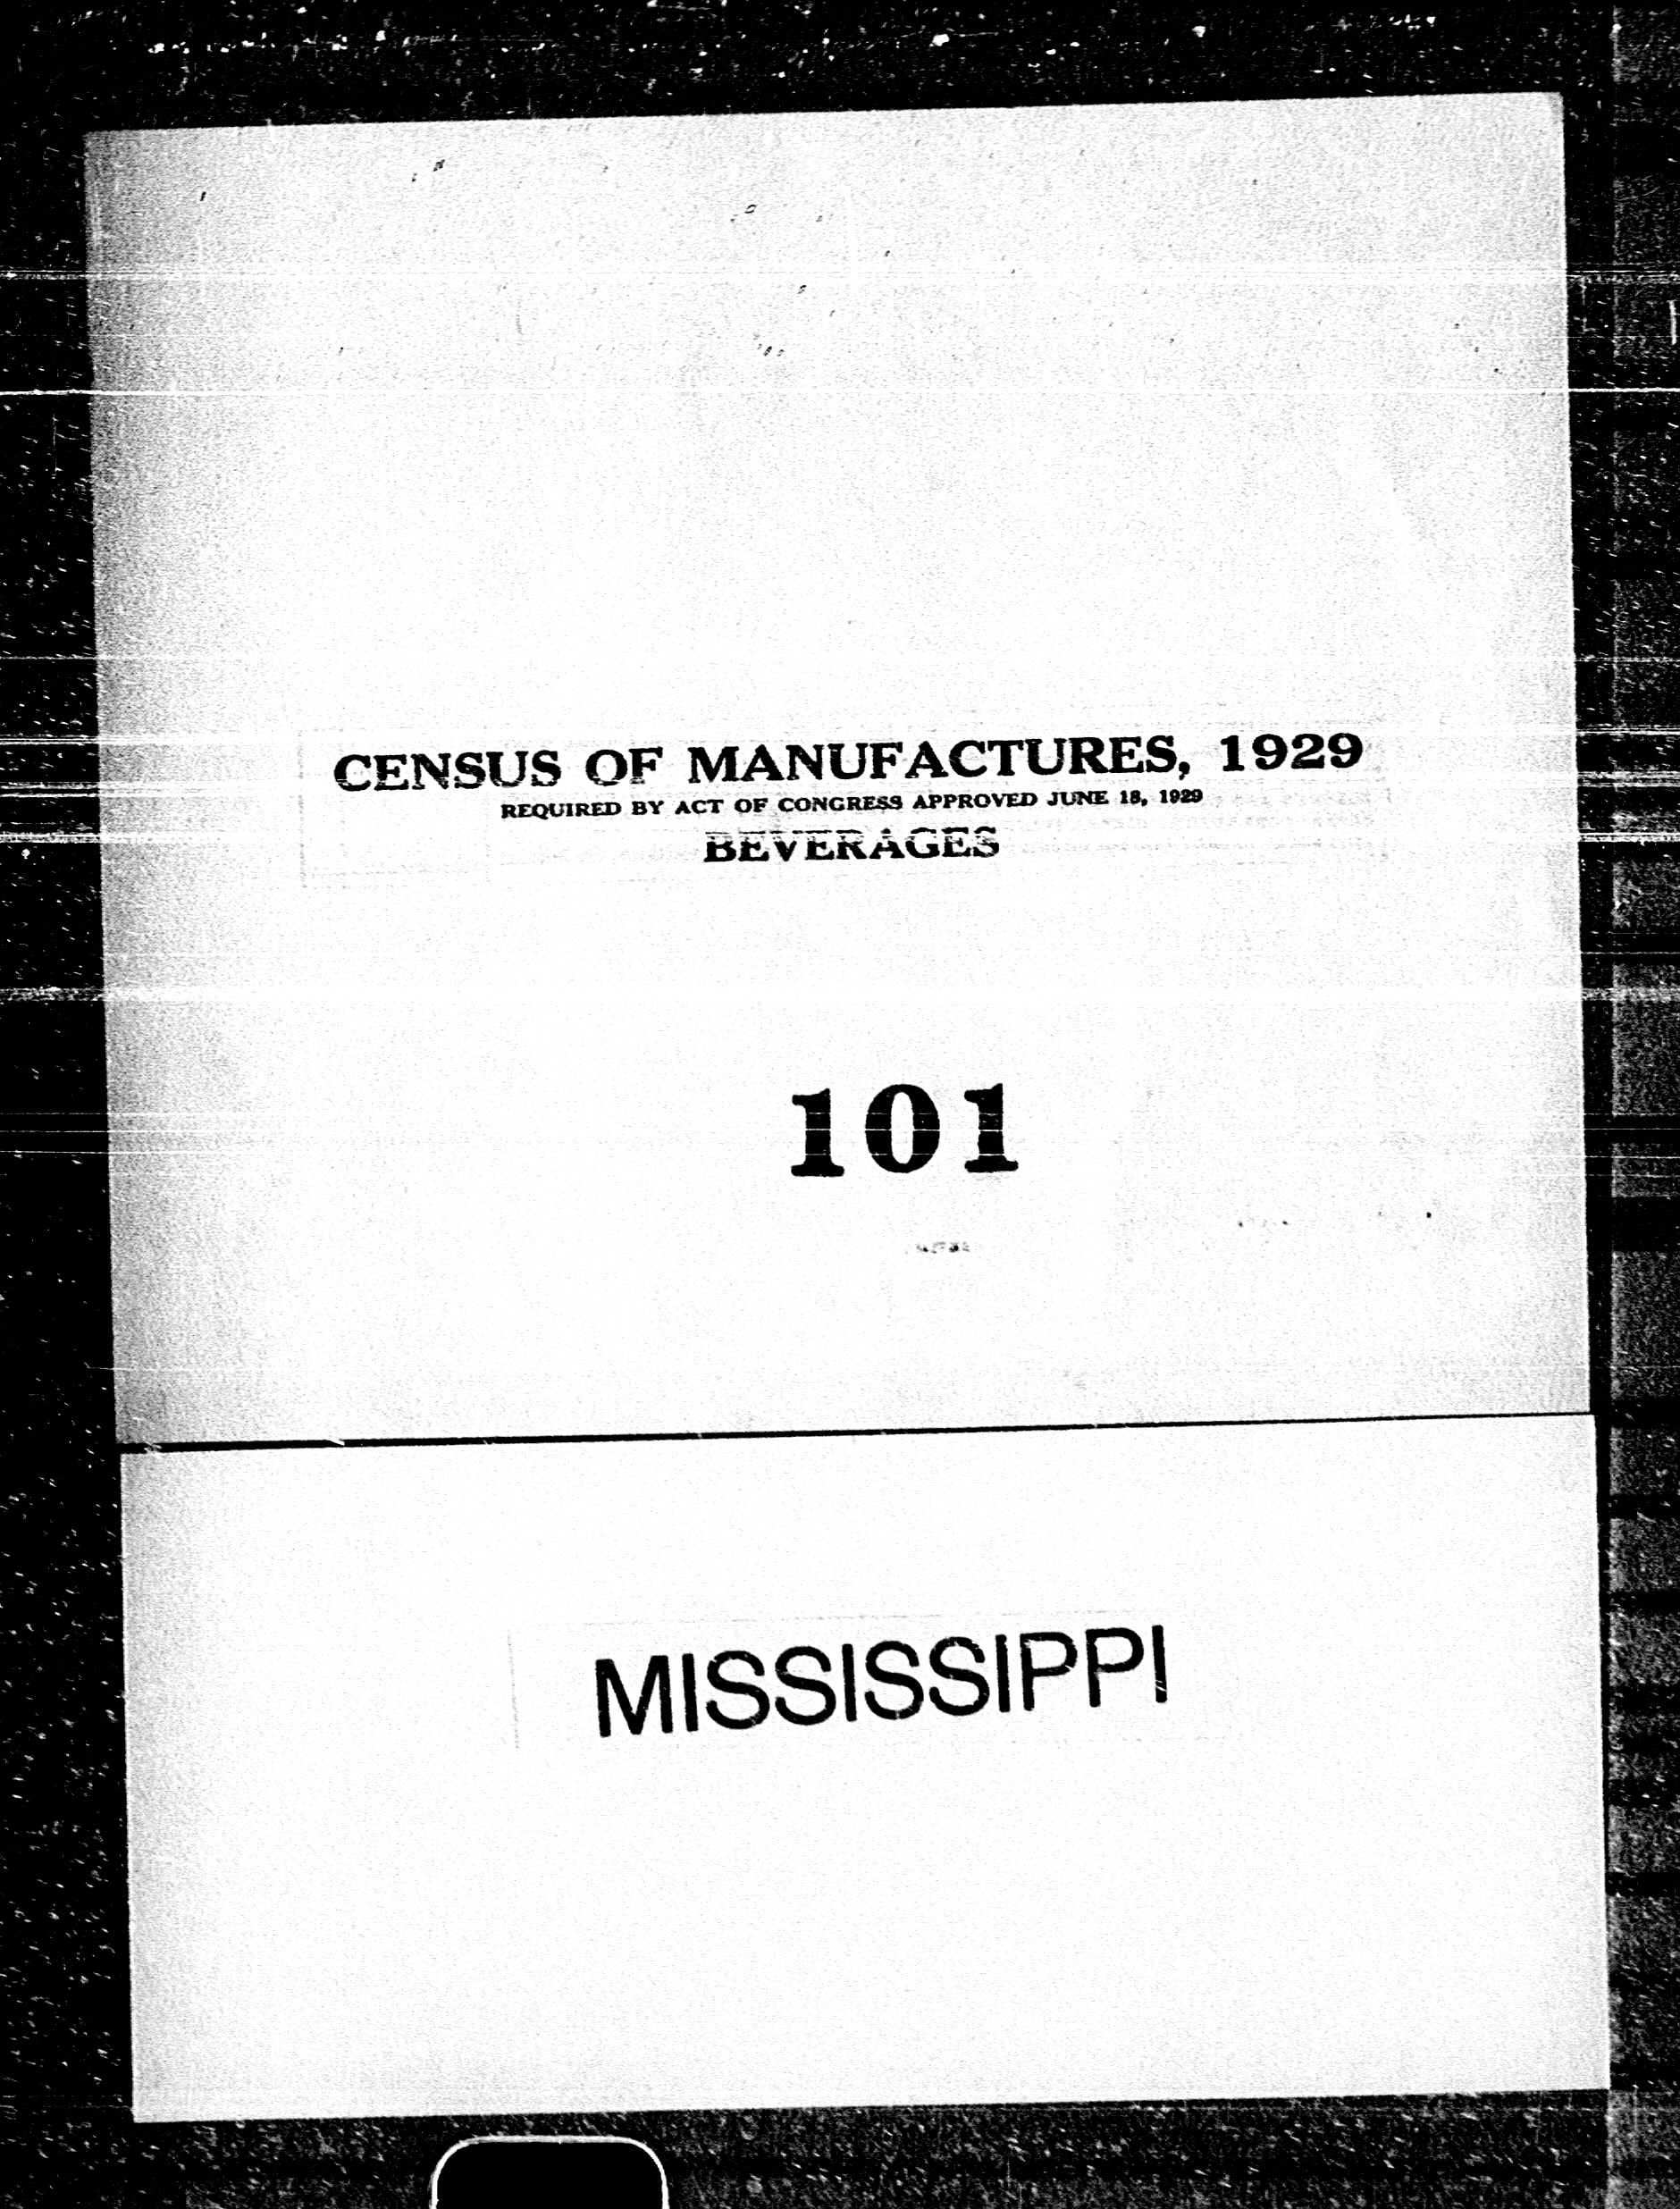 Mississippi: Industry No. 101 - Beverages